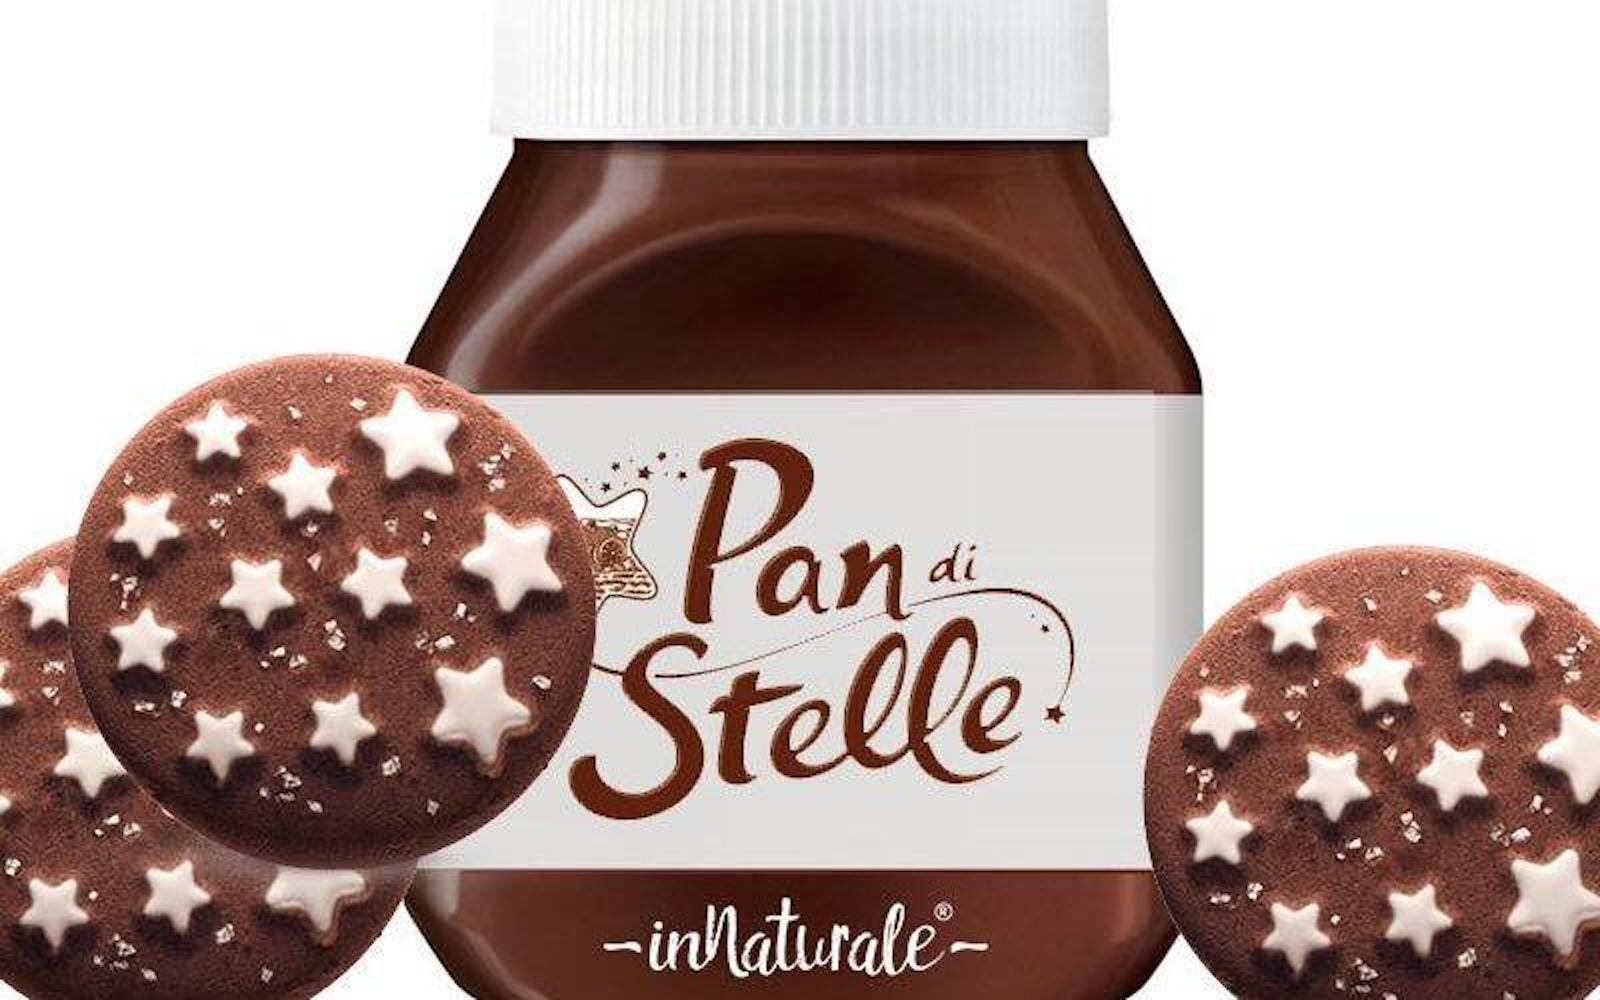 Crema Pan di Stelle, the new rival of Nutella signed Barillla